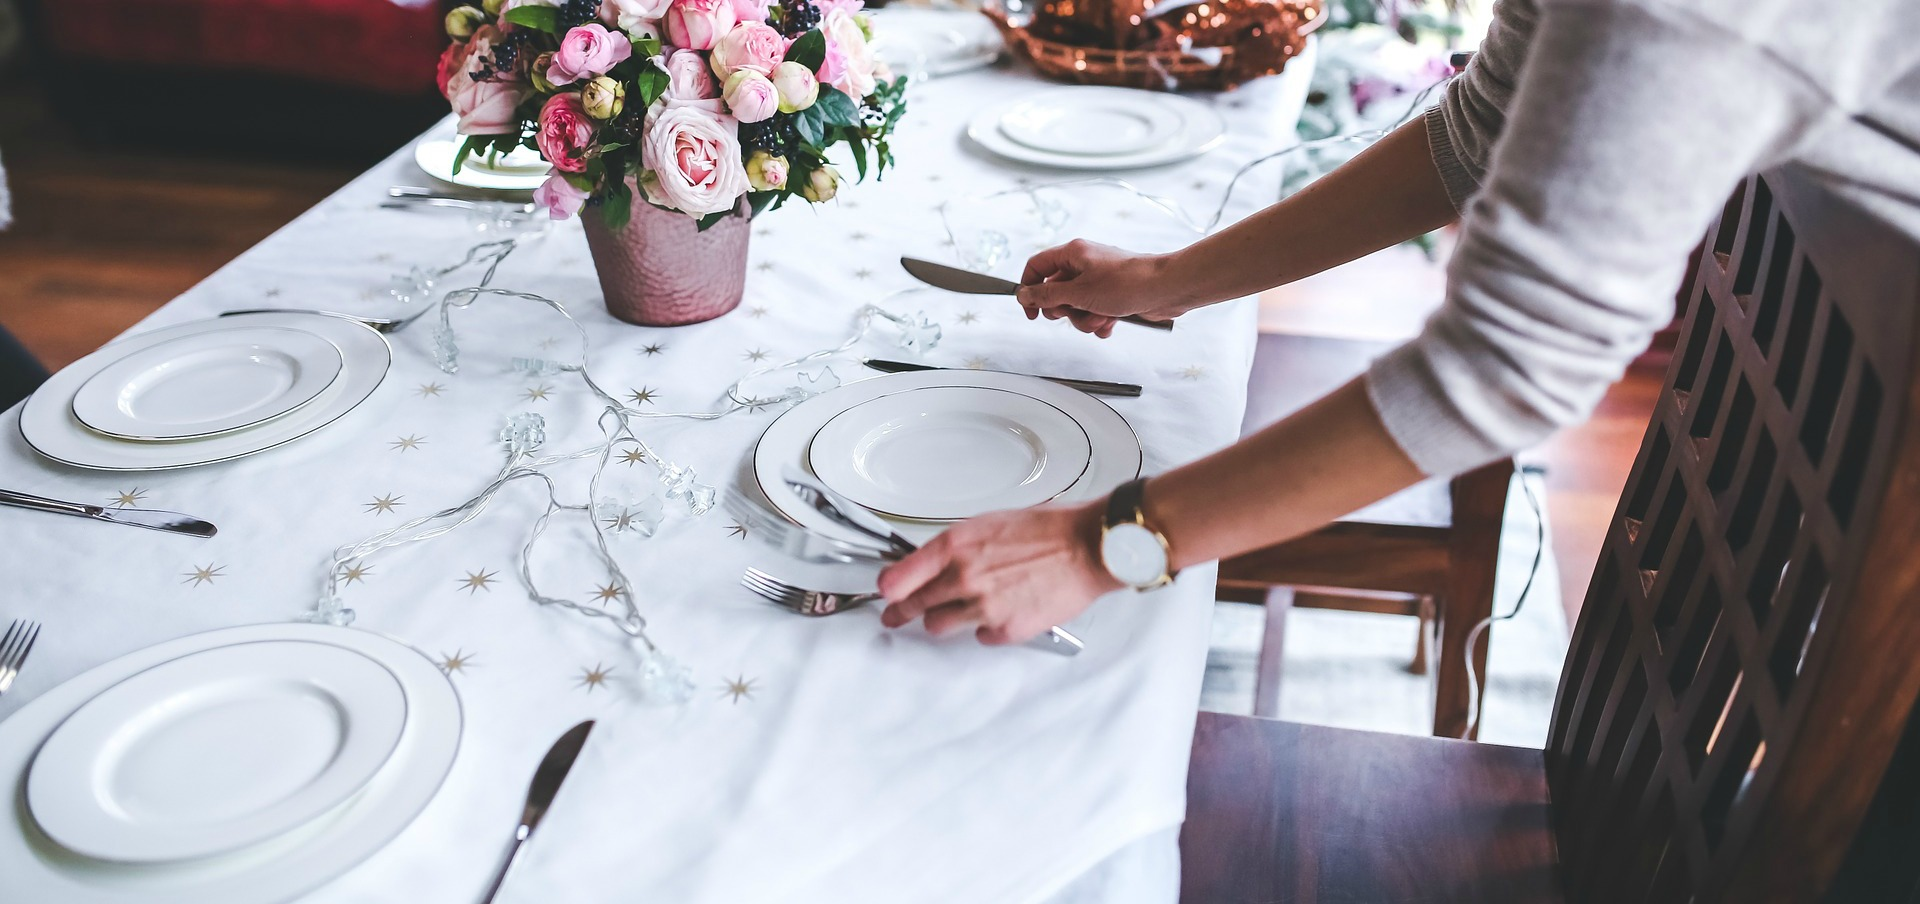 How To Plan the Ultimate Thanksgiving Guest List